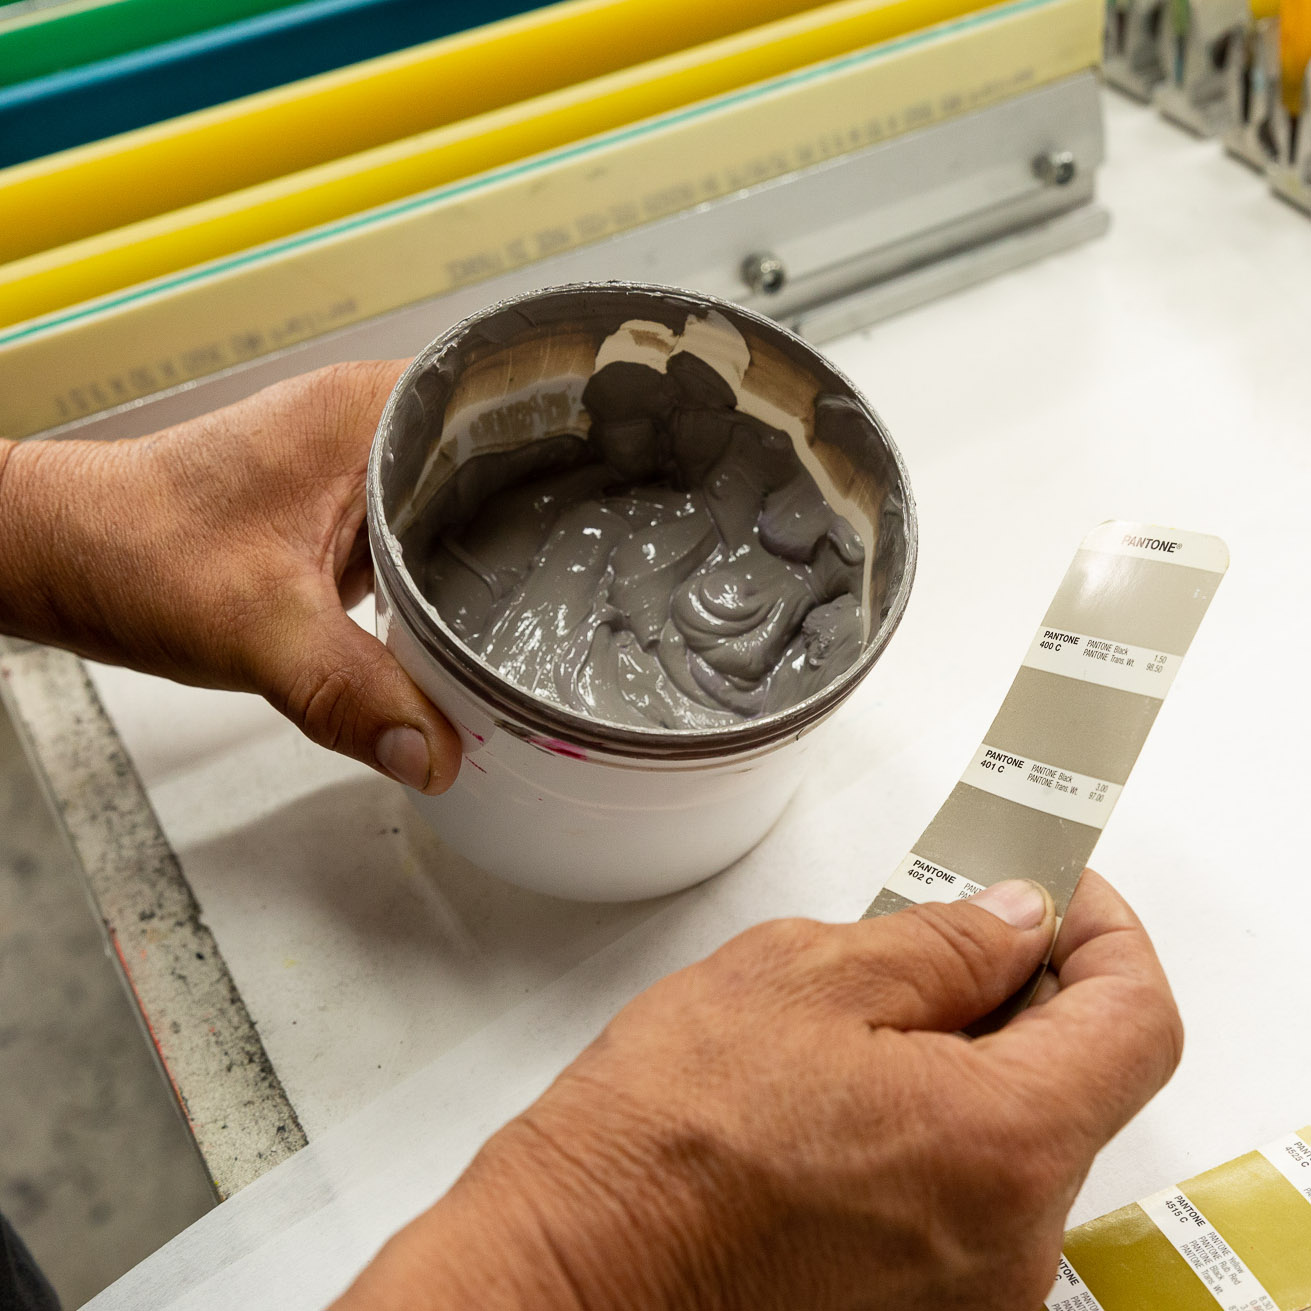 A member of the screen printing team matches ink color to a Pantone swatch.